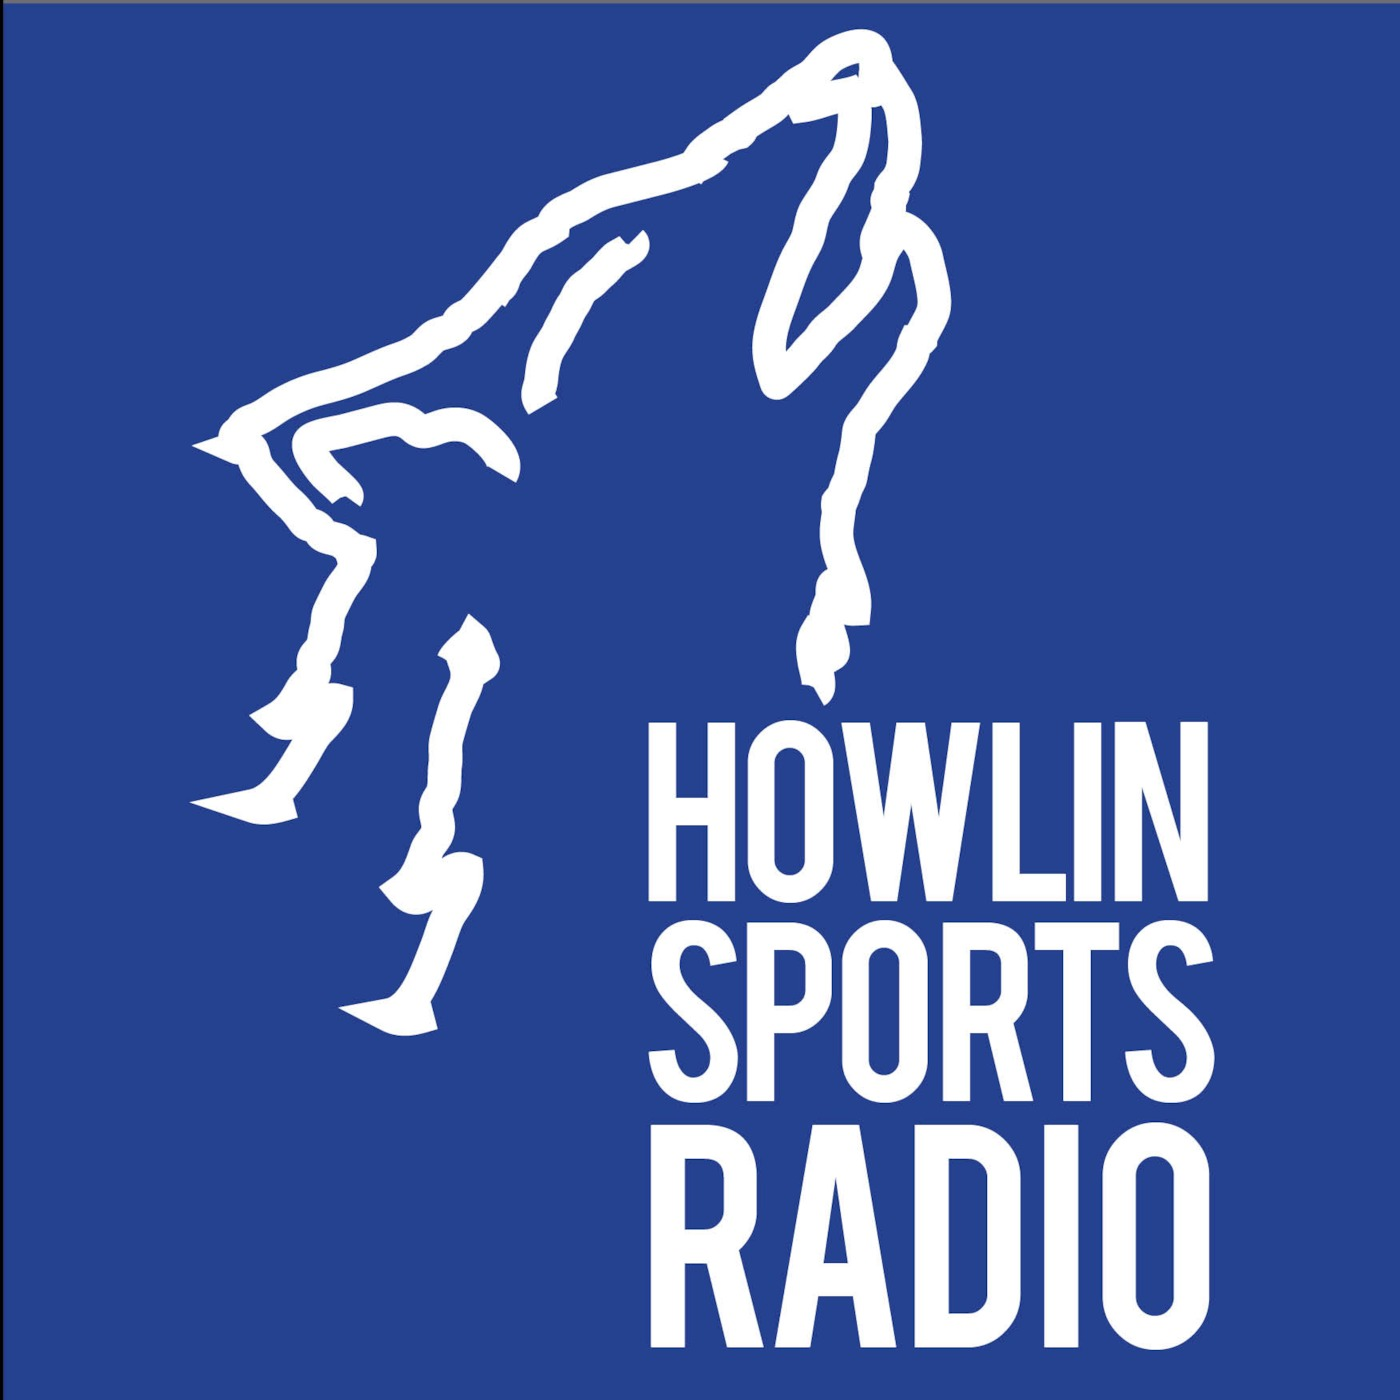 Howlin Sports Radio